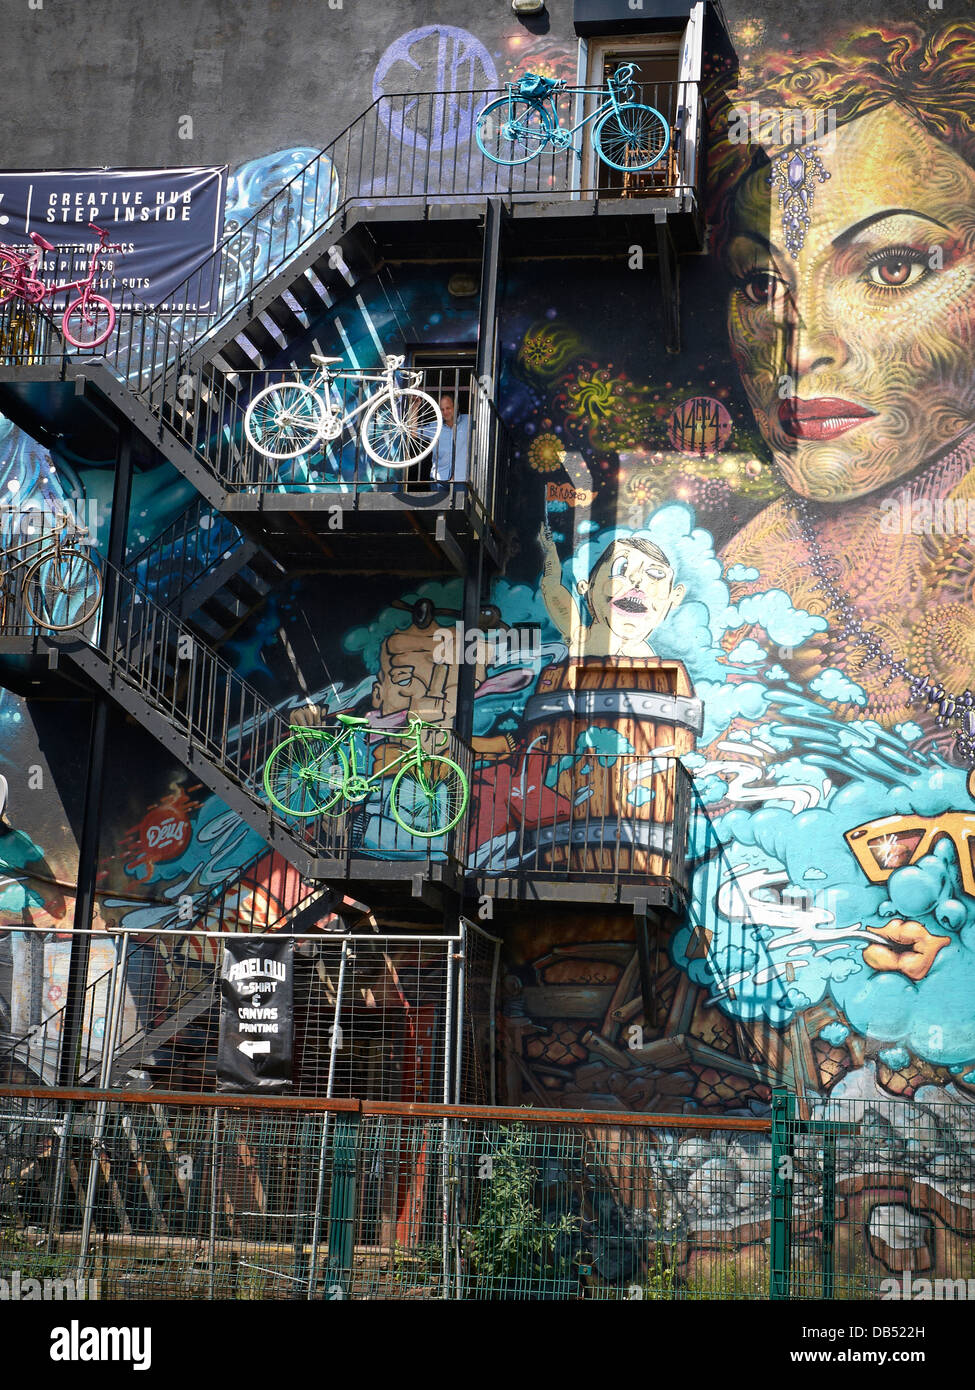 Ridelow bicycle shop advert with mural in Manchester UK - Stock Image